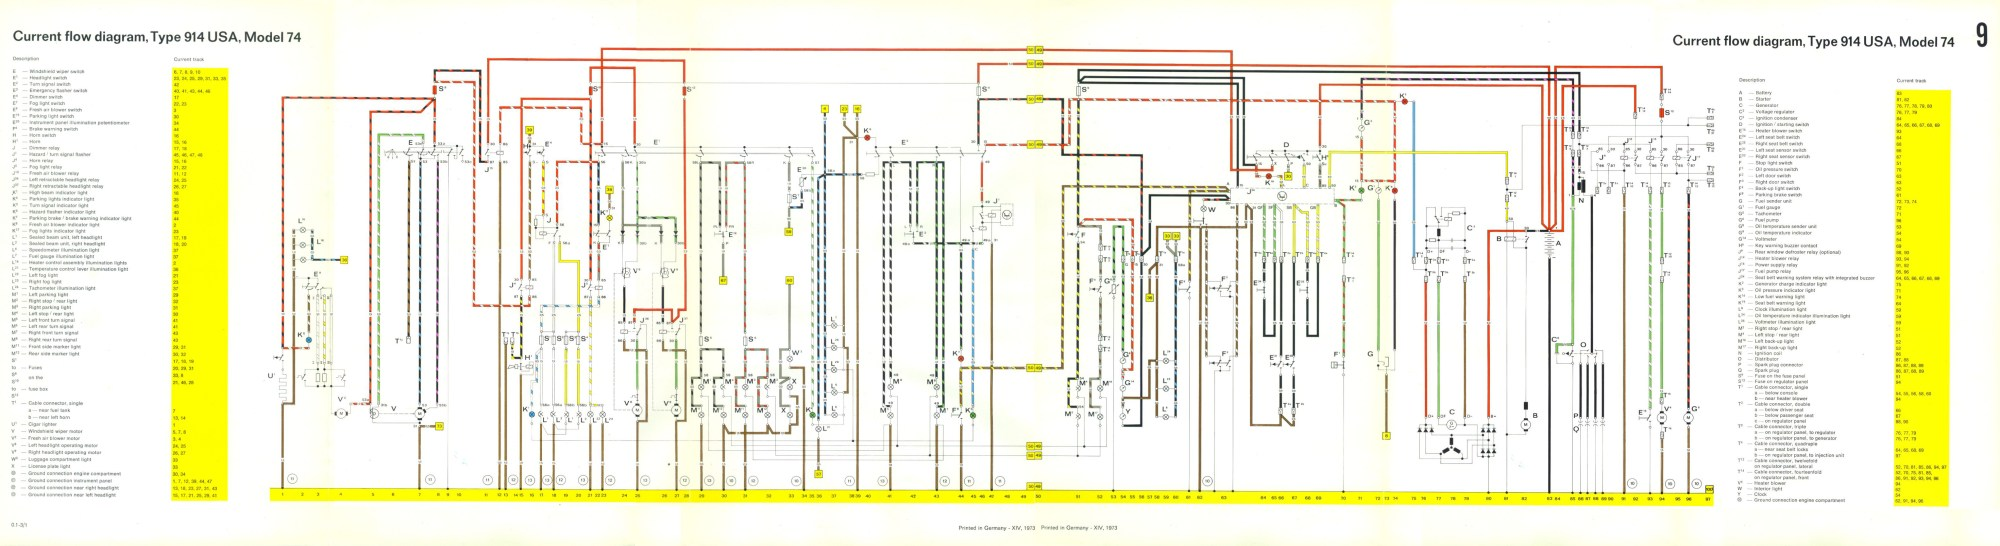 hight resolution of 1970 porsche 914 wiring diagram wiring diagram third level rh 19 6 16 jacobwinterstein com porsche 914 6 wiring diagram porsche 914 6 wiring diagram